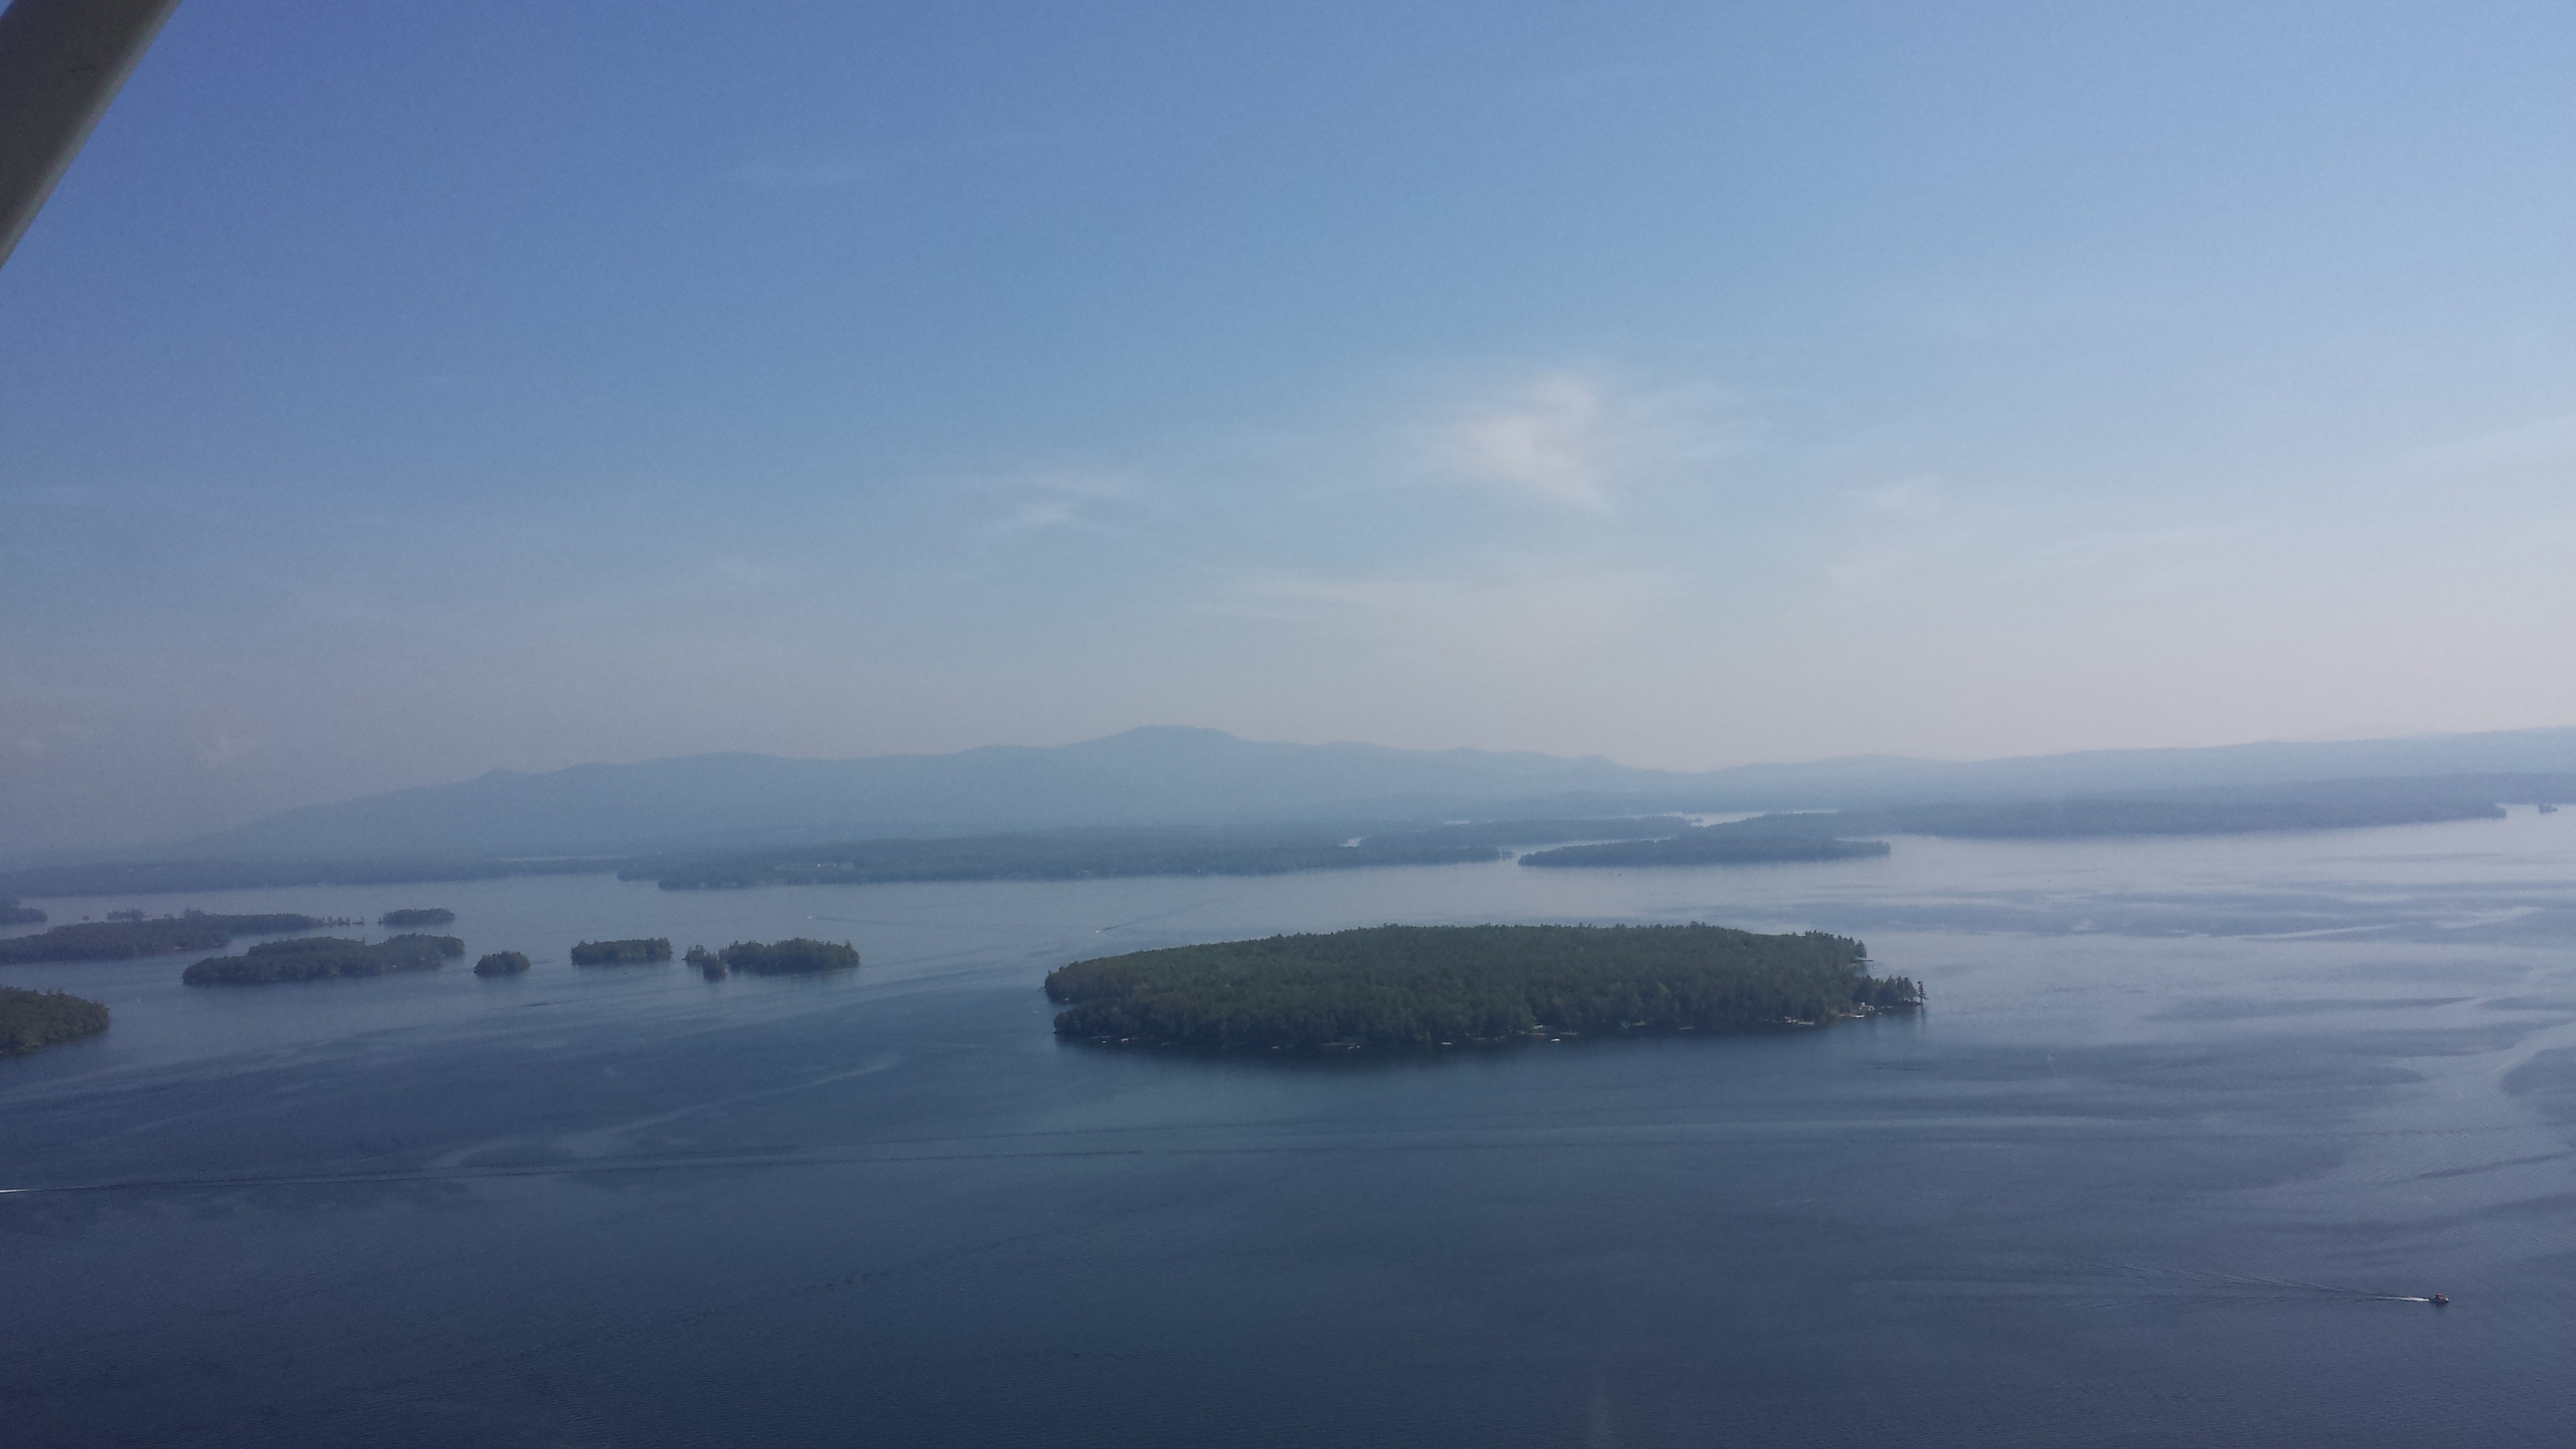 Flying over Lake Winnipesaukee, New Hampshire